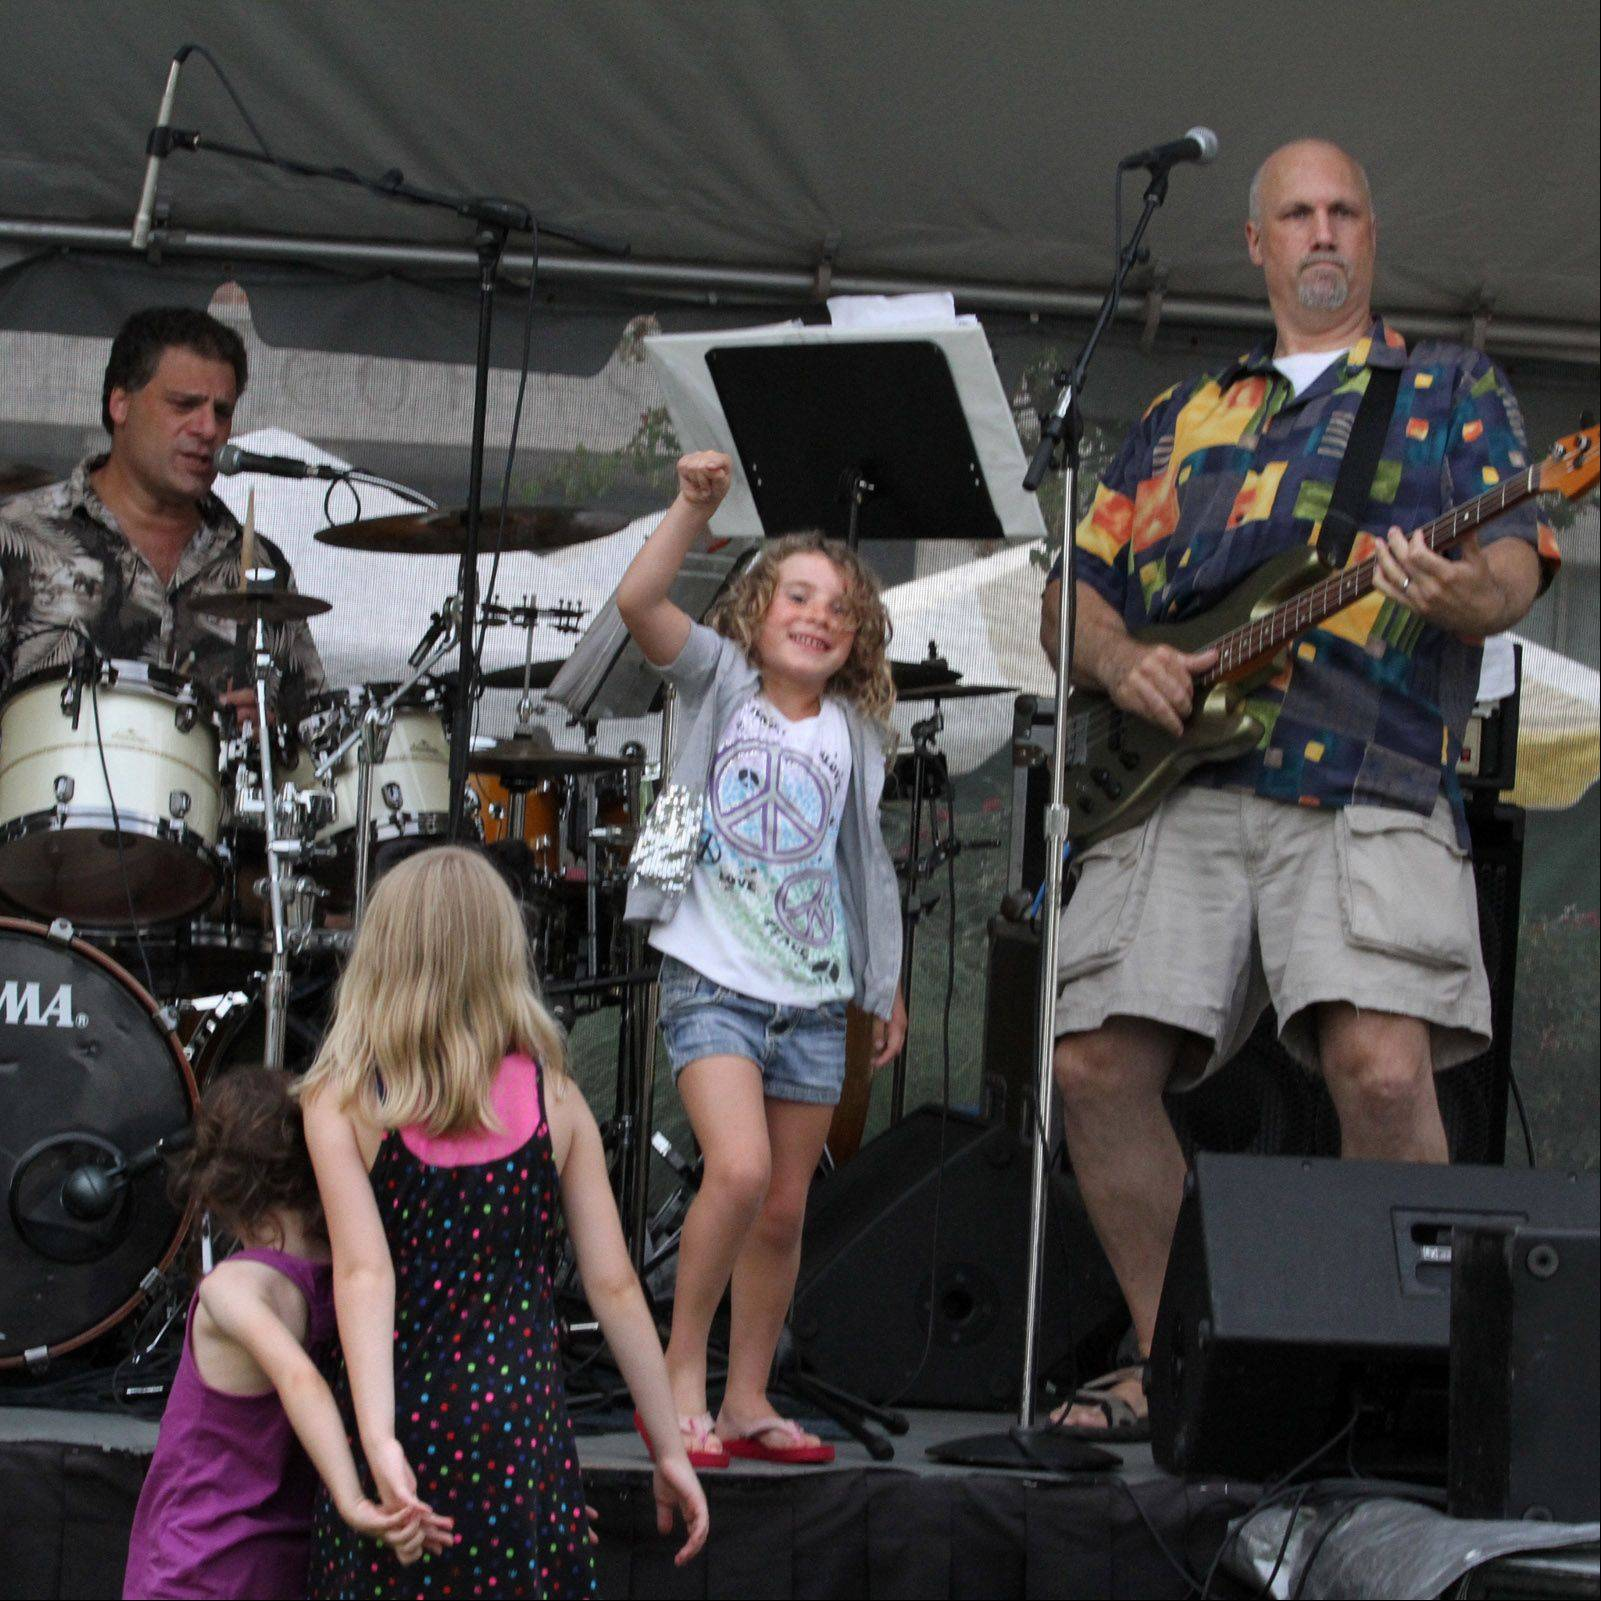 Sarah Horwitz, 5, of Lincolnshire dances onstage to rock music by Jukebox Band with Steve Tschaikowsky of Mettawa playing guitar, right, at 11th Annual Taste of Lincolnshire at Village Green on Friday.